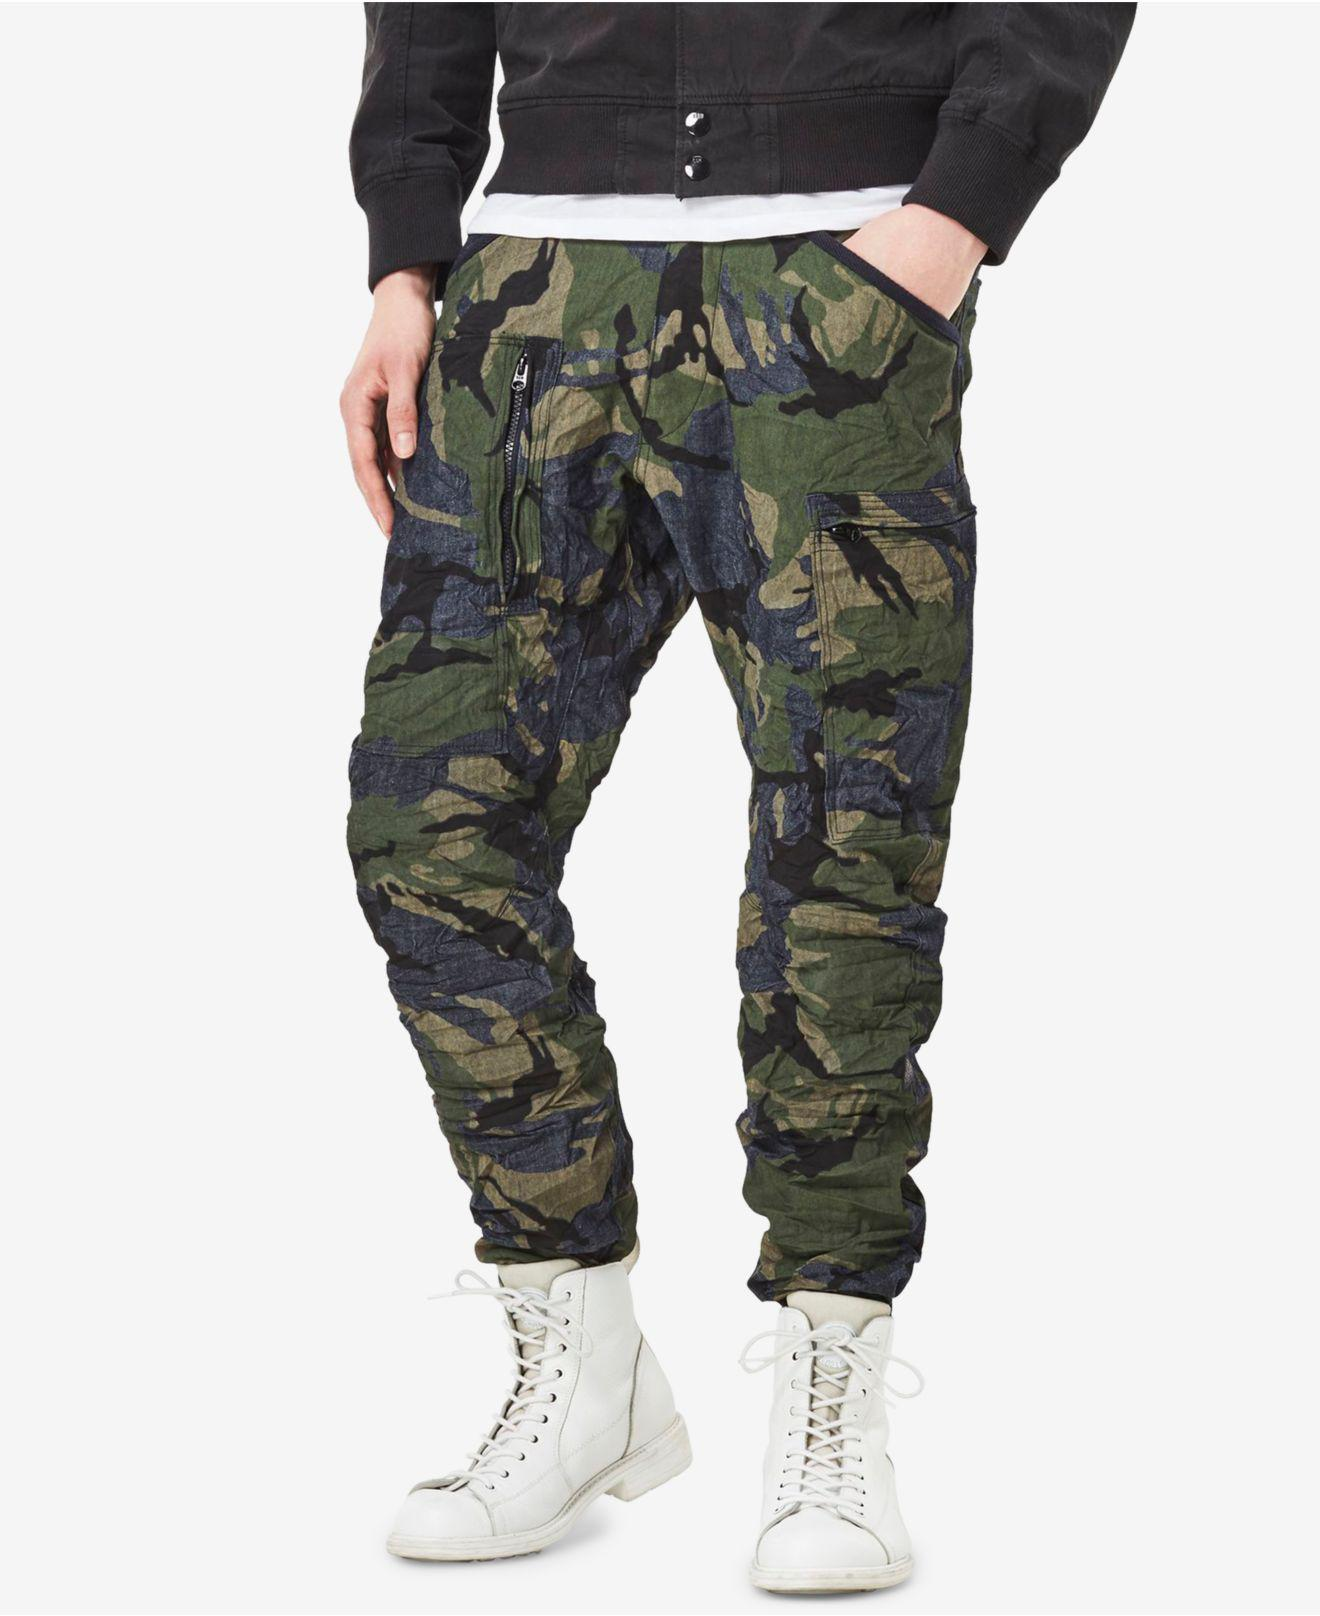 lyst g star raw men 39 s powell 3d tapered fit camouflage cuffed jeans in green for men. Black Bedroom Furniture Sets. Home Design Ideas